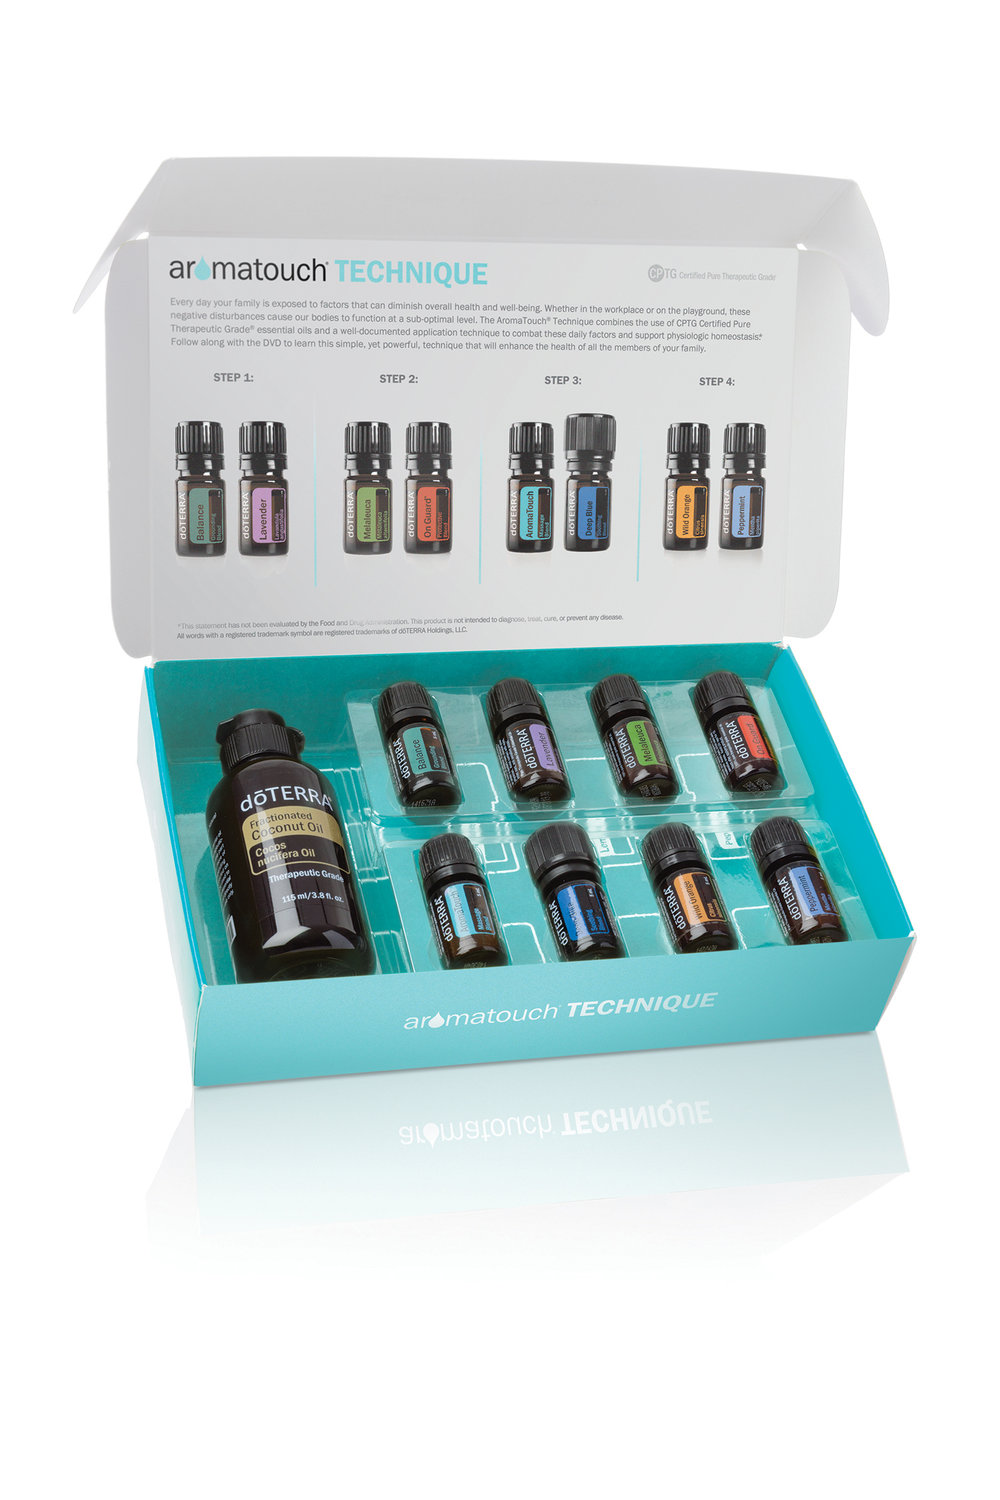 Increase the benefits you experience with CPTG® essential oils by incorporating the AromaTouch® Technique into your healthy lifestyle philosophy. This kit contains 5 mL bottles of dōTERRA Balance®, Lavender, Peppermint, Melaleuca, Wild Orange, AromaTouch, Deep Blue®, and dōTERRA On Guard®. For a limited time, you will also receive dōTERRA Fractionated Coconut Oil (4 oz.) when you purchase this kit. -